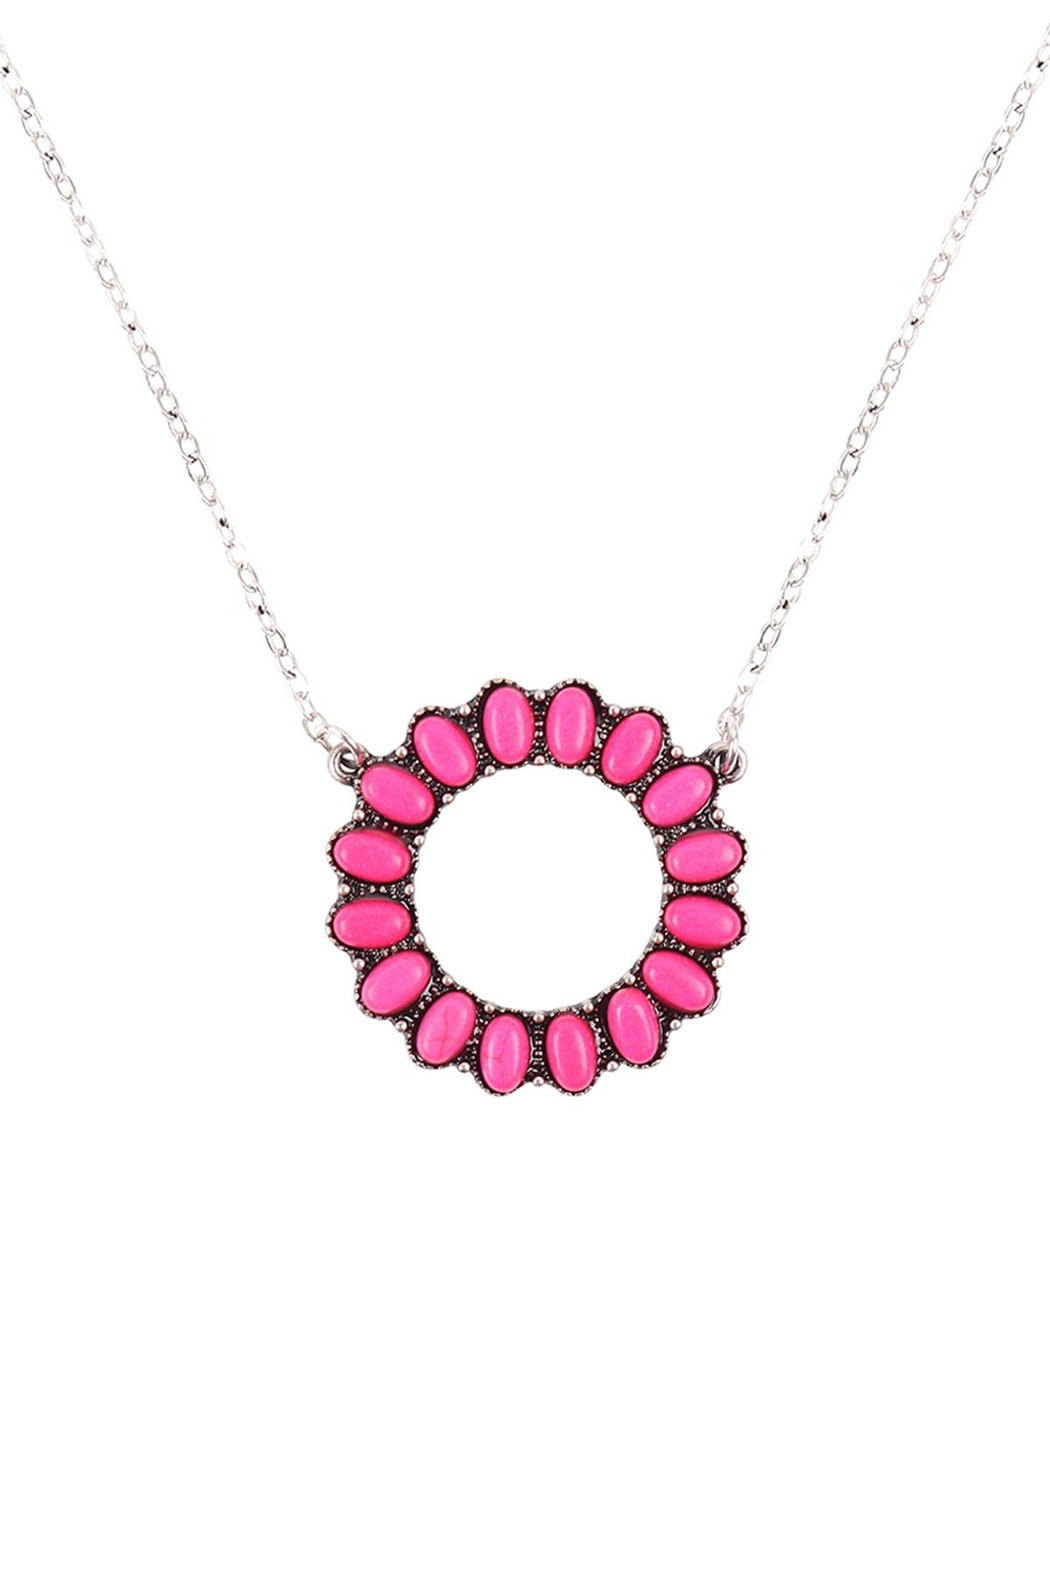 Riah Fashion Open-Circle-Natural-Ova- Ston- Pave-Pendant-Necklace-And-Earring-Set - Front Cropped Image